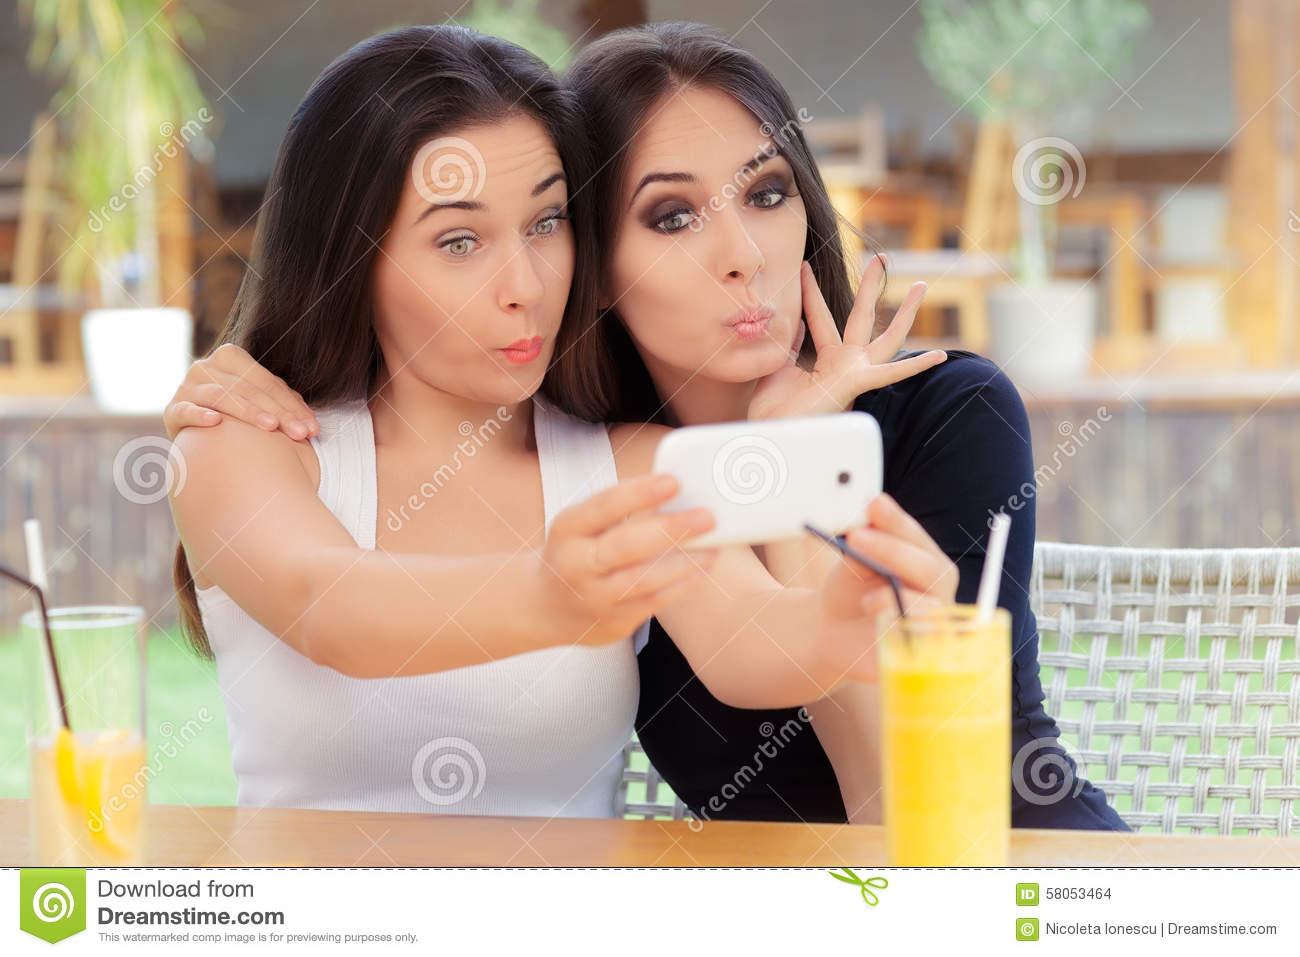 image Silly selfie girls 1040